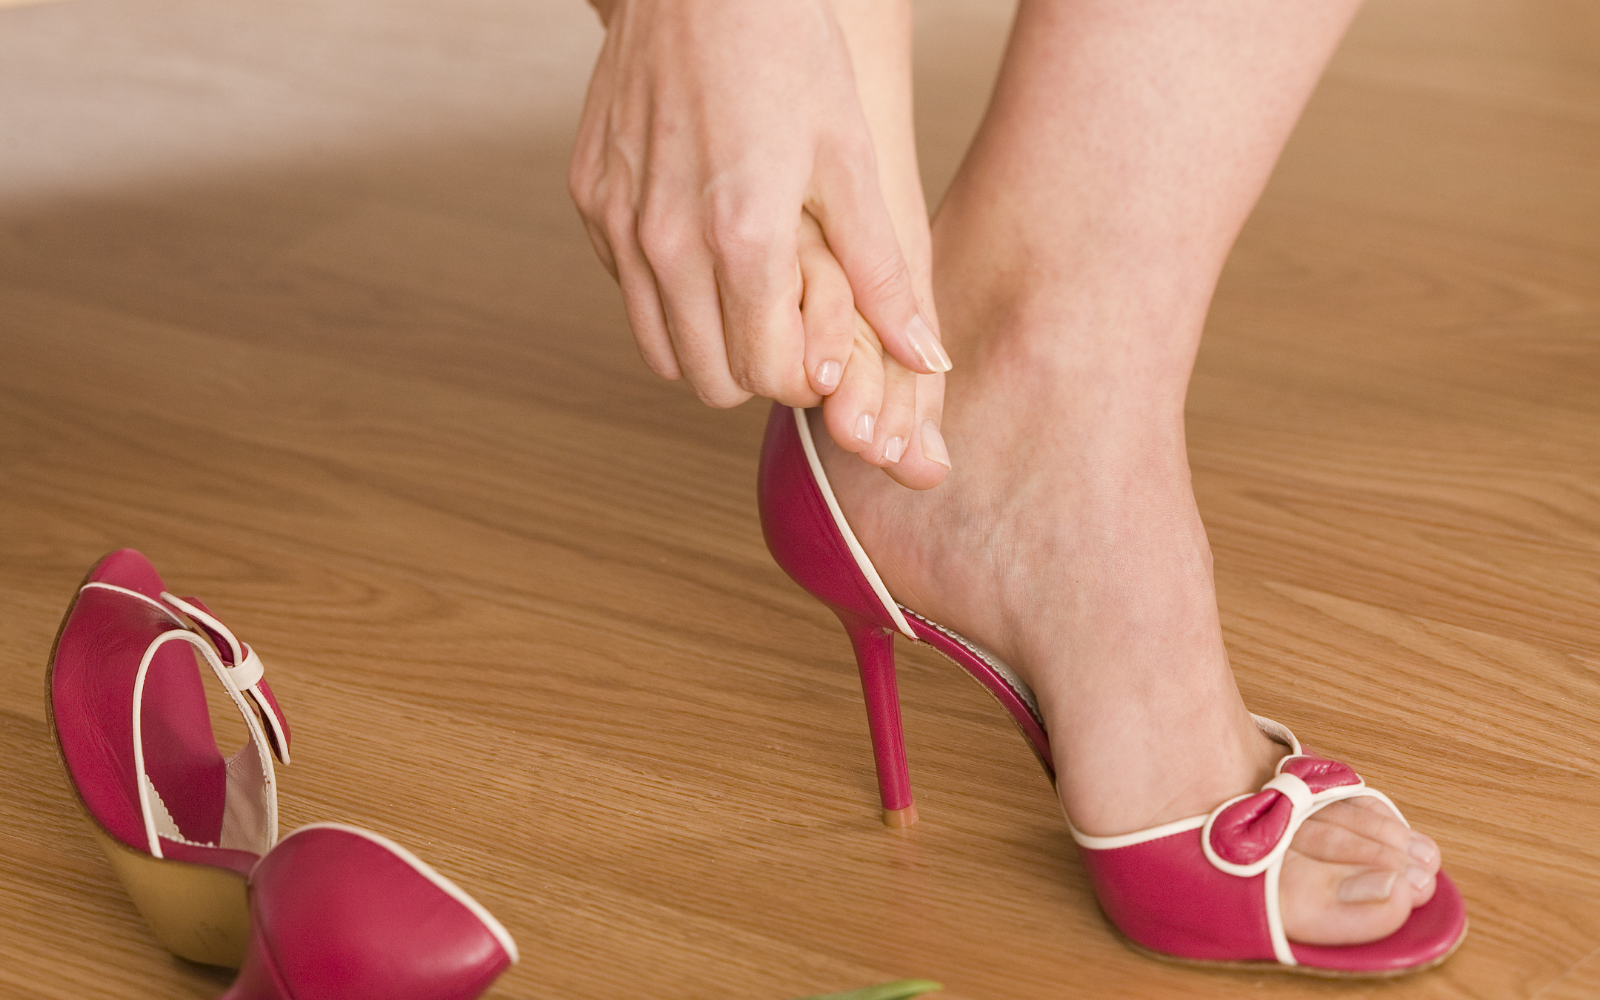 30 Ultimate Reasons For Foot Pain